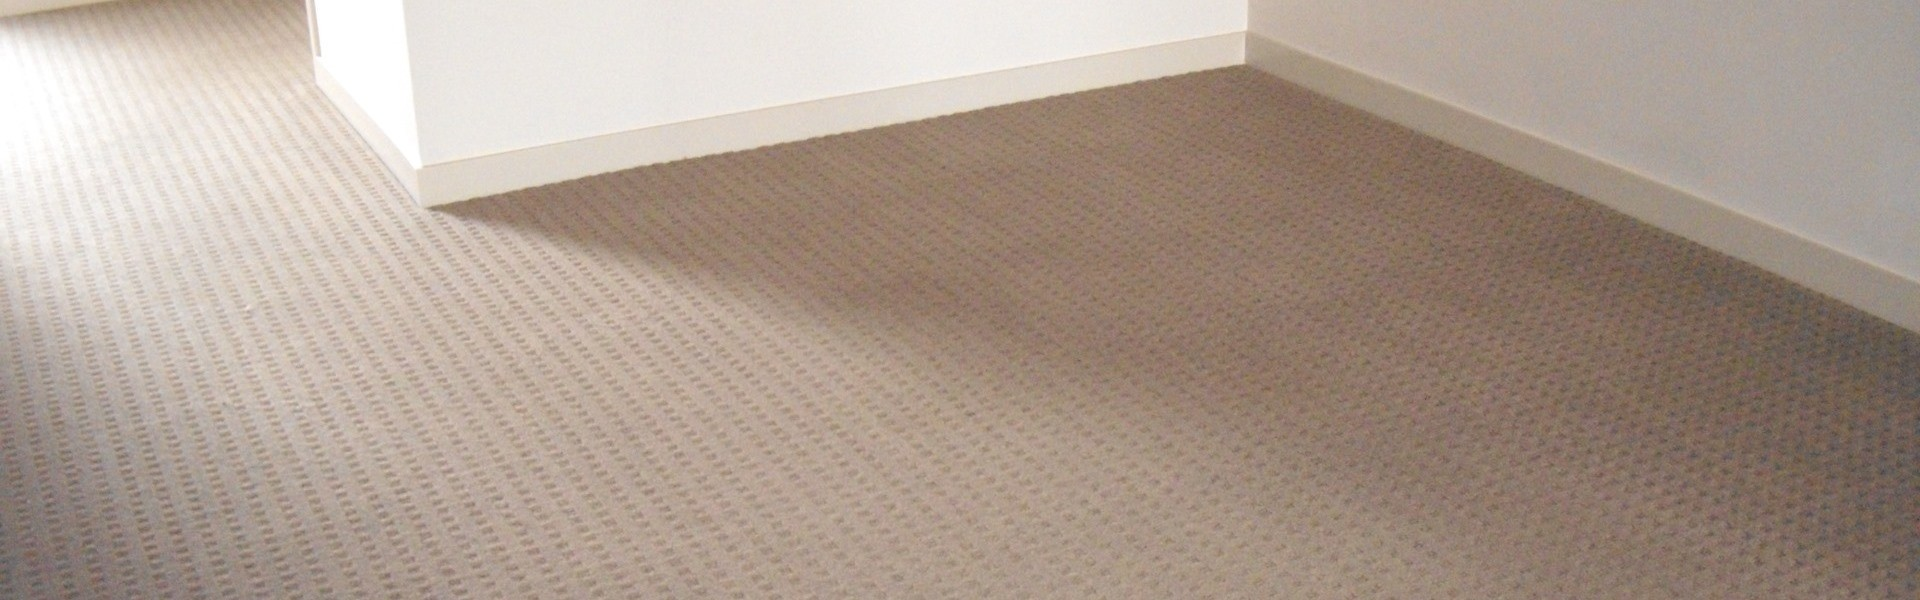 Household Carpet Steam Cleaning